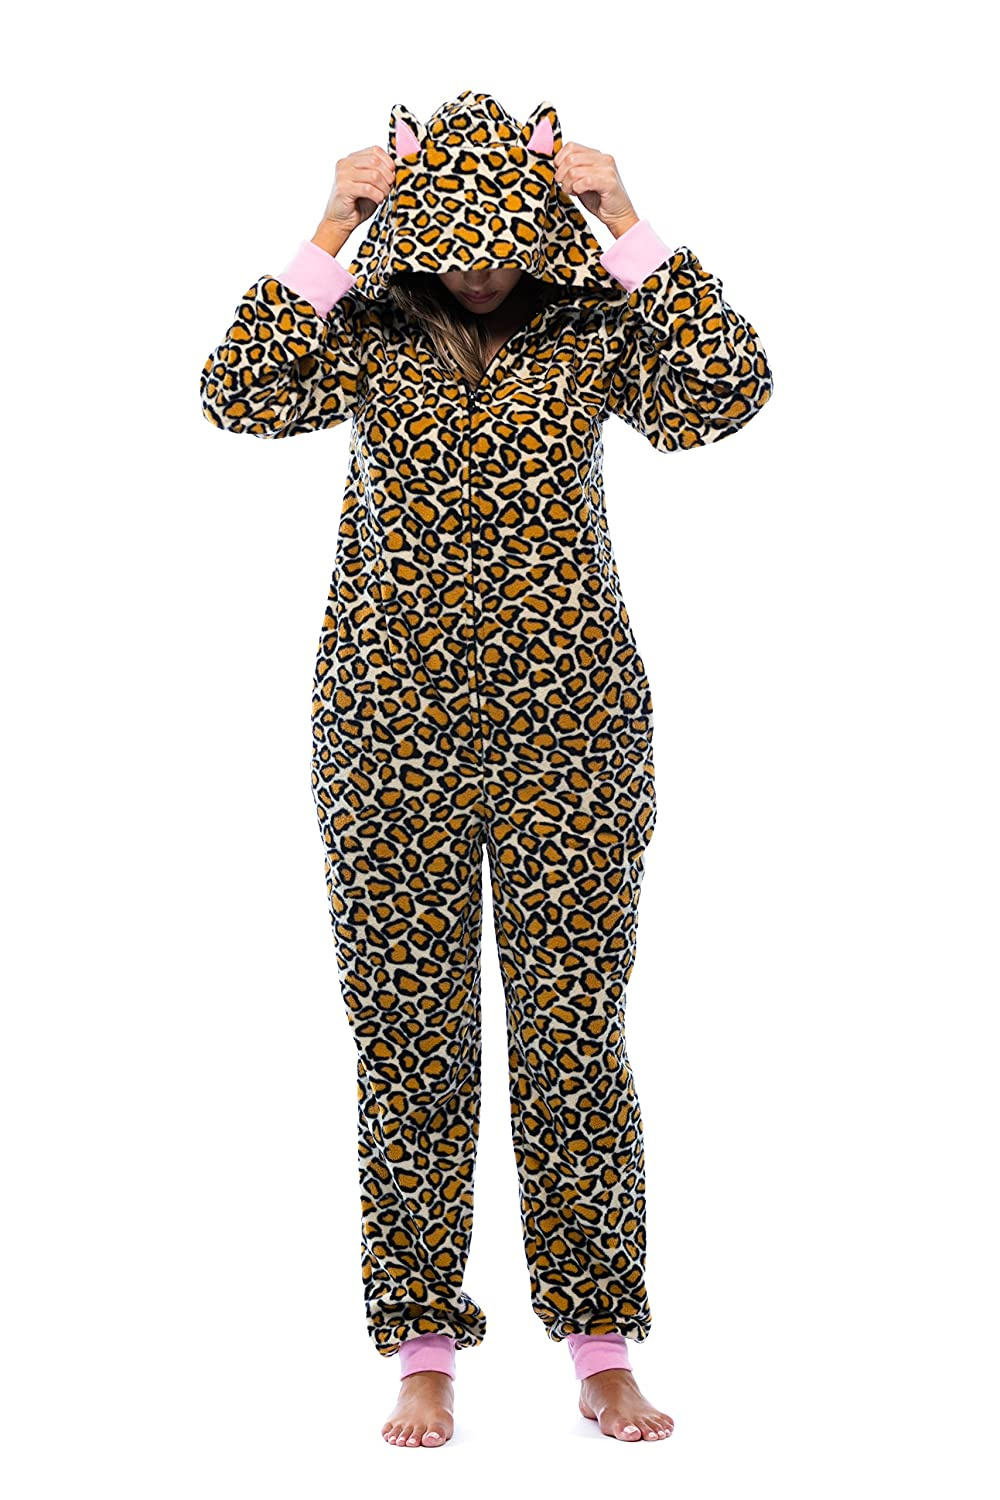 dfc6bbe5e5 Amazon.com  Just Love Adult Onesie with Animal Prints Pajamas  Clothing